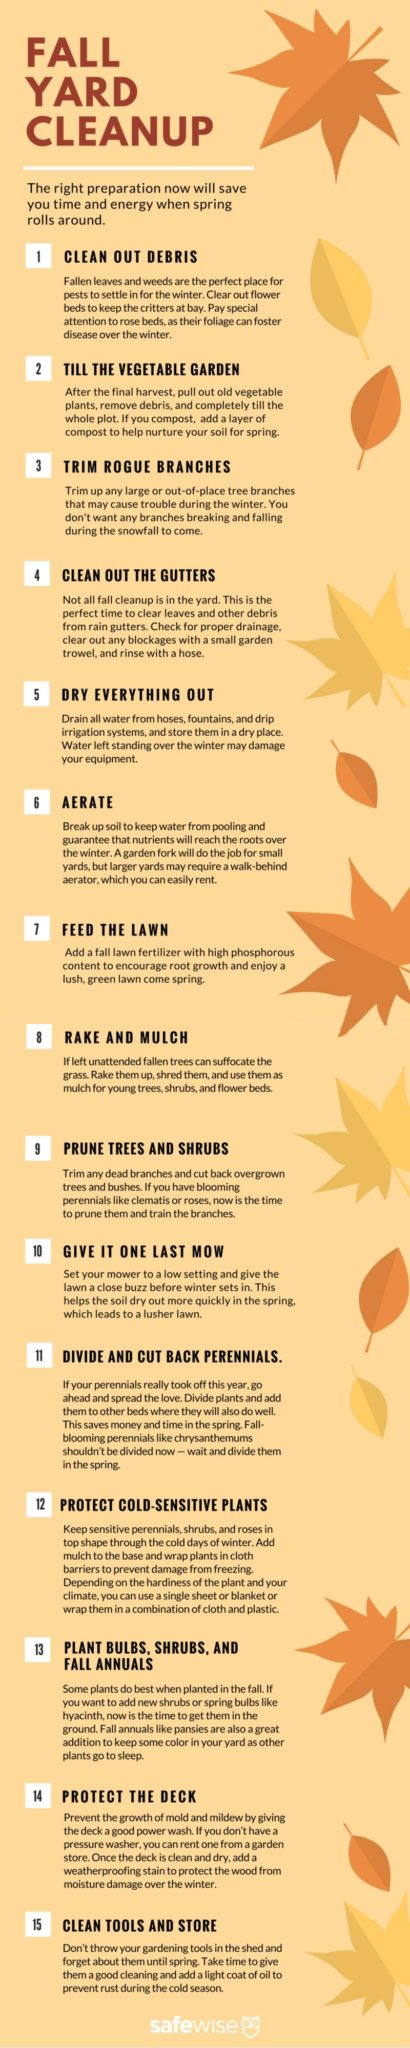 The 15 Must Dos Of Fall Yard Cleanup